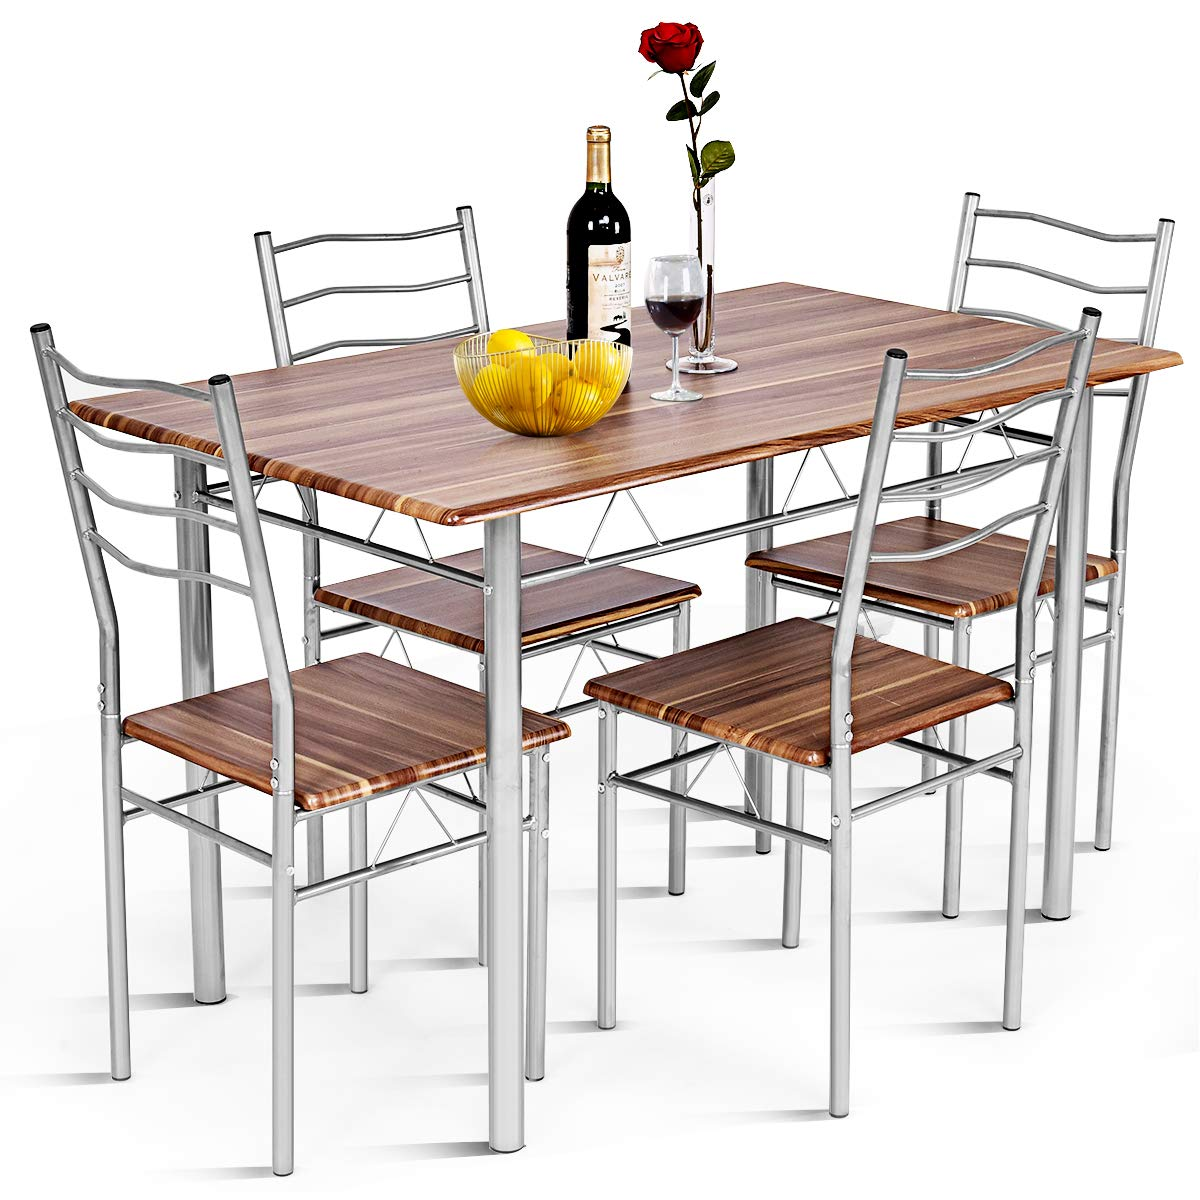 Giantex Modern 5 Piece Dining Table Set with 4 Chairs Metal Frame Wood Like Kitchen Furniture Rectangular Table & Chair Sets for Dining Room (Shallow Walnut) by Giantex